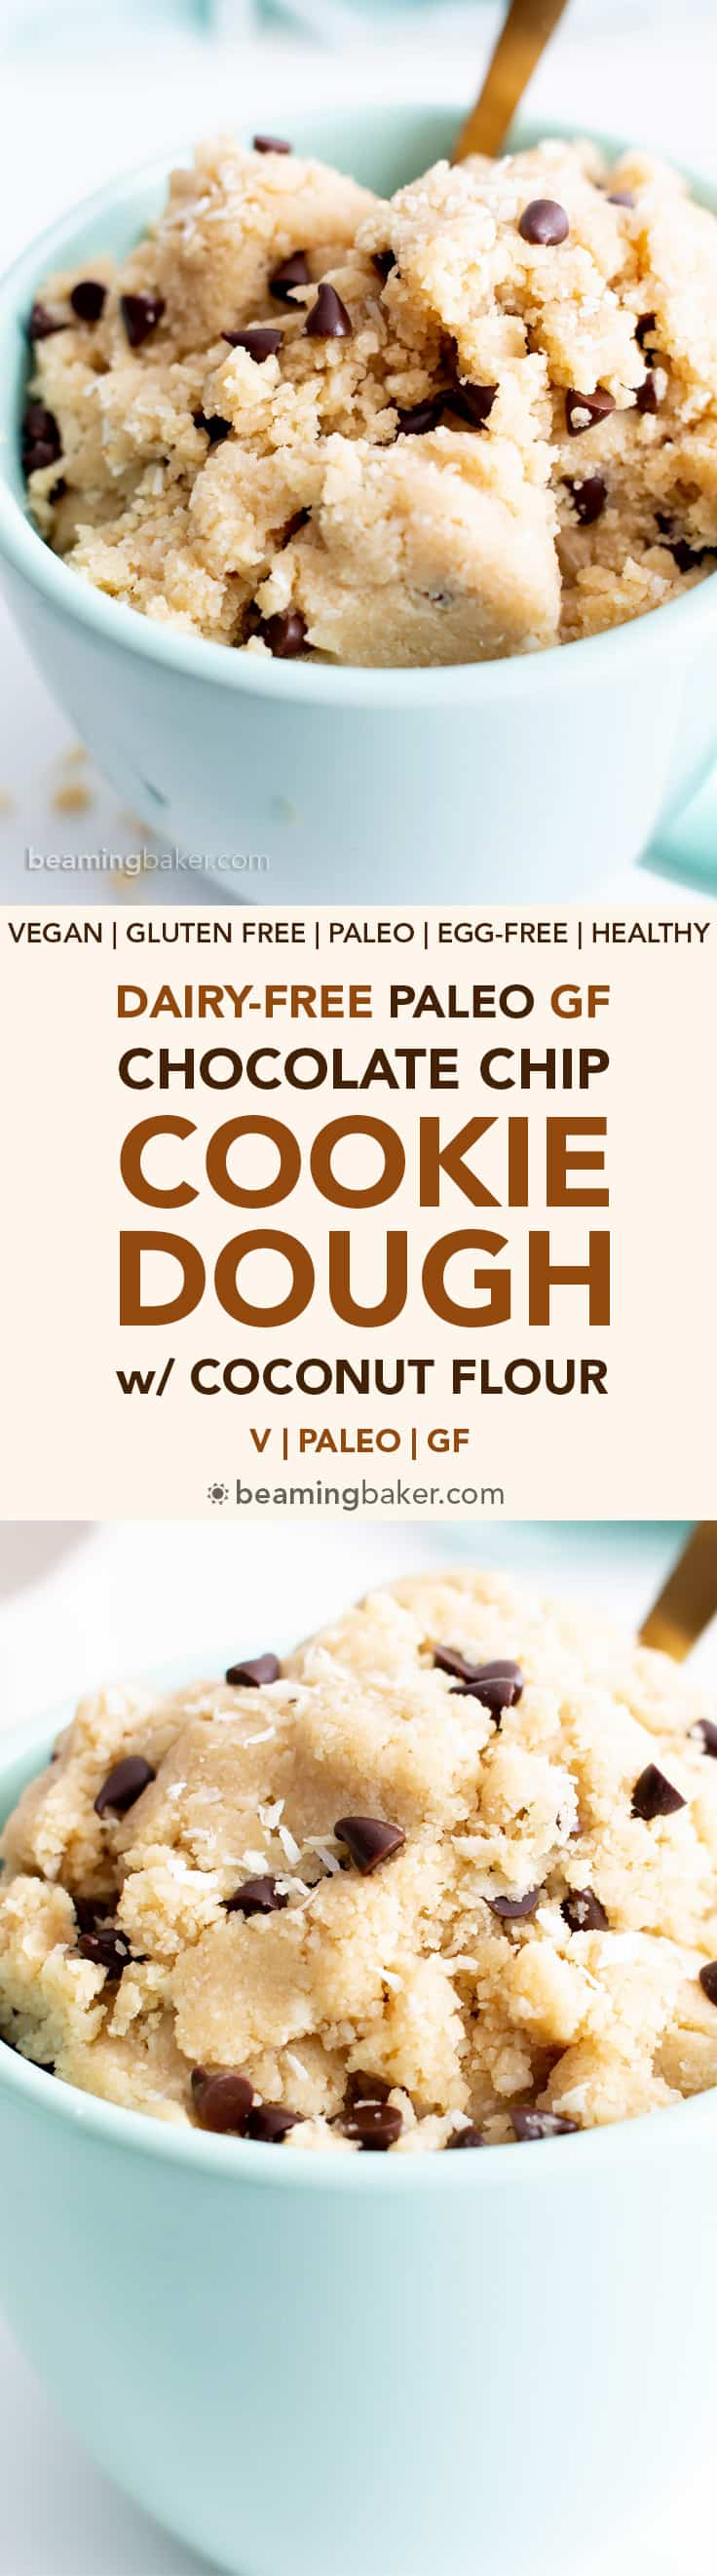 Dairy-Free Coconut Flour Cookie Dough (V, GF): this decadent paleo vegan cookie dough recipe is packed with coconut flavor! It's the tastiest edible almond flour cookie dough treat—healthy, easy & gluten-free! #CookieDough #Paleo #Vegan #GlutenFree #ChocolateChip | Recipe at BeamingBaker.com